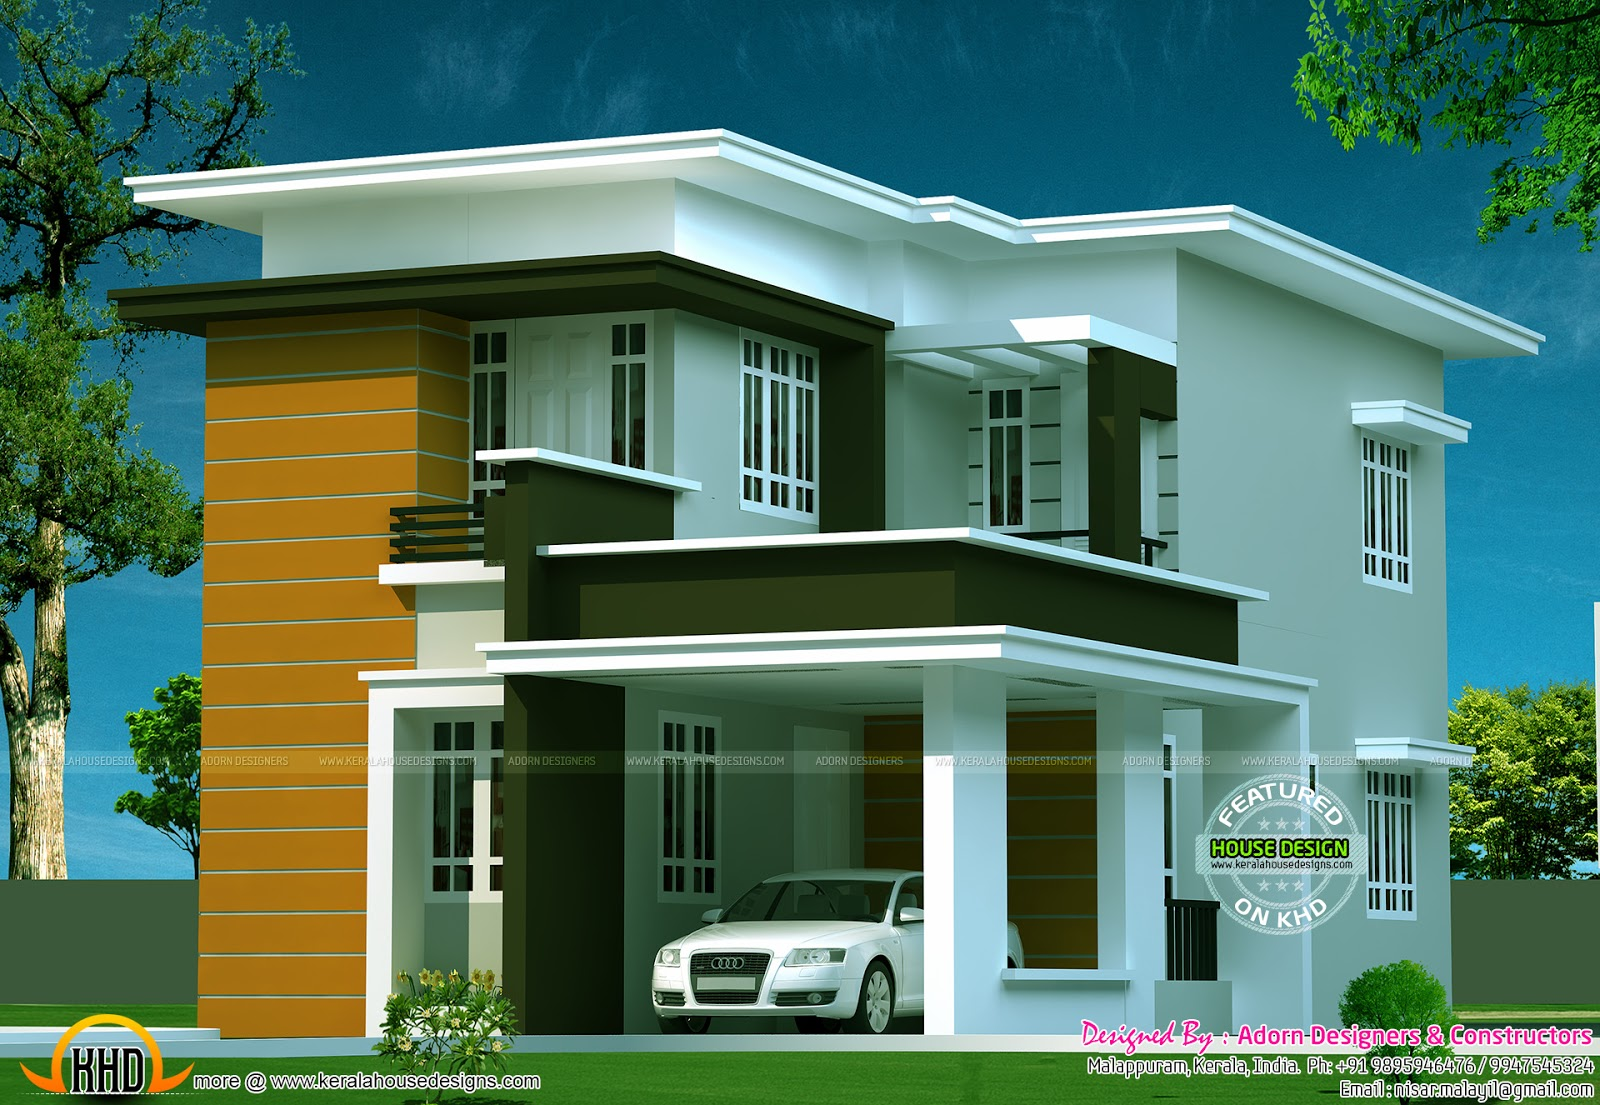 New flat roof house kerala home design and floor plans for Houses and their plans